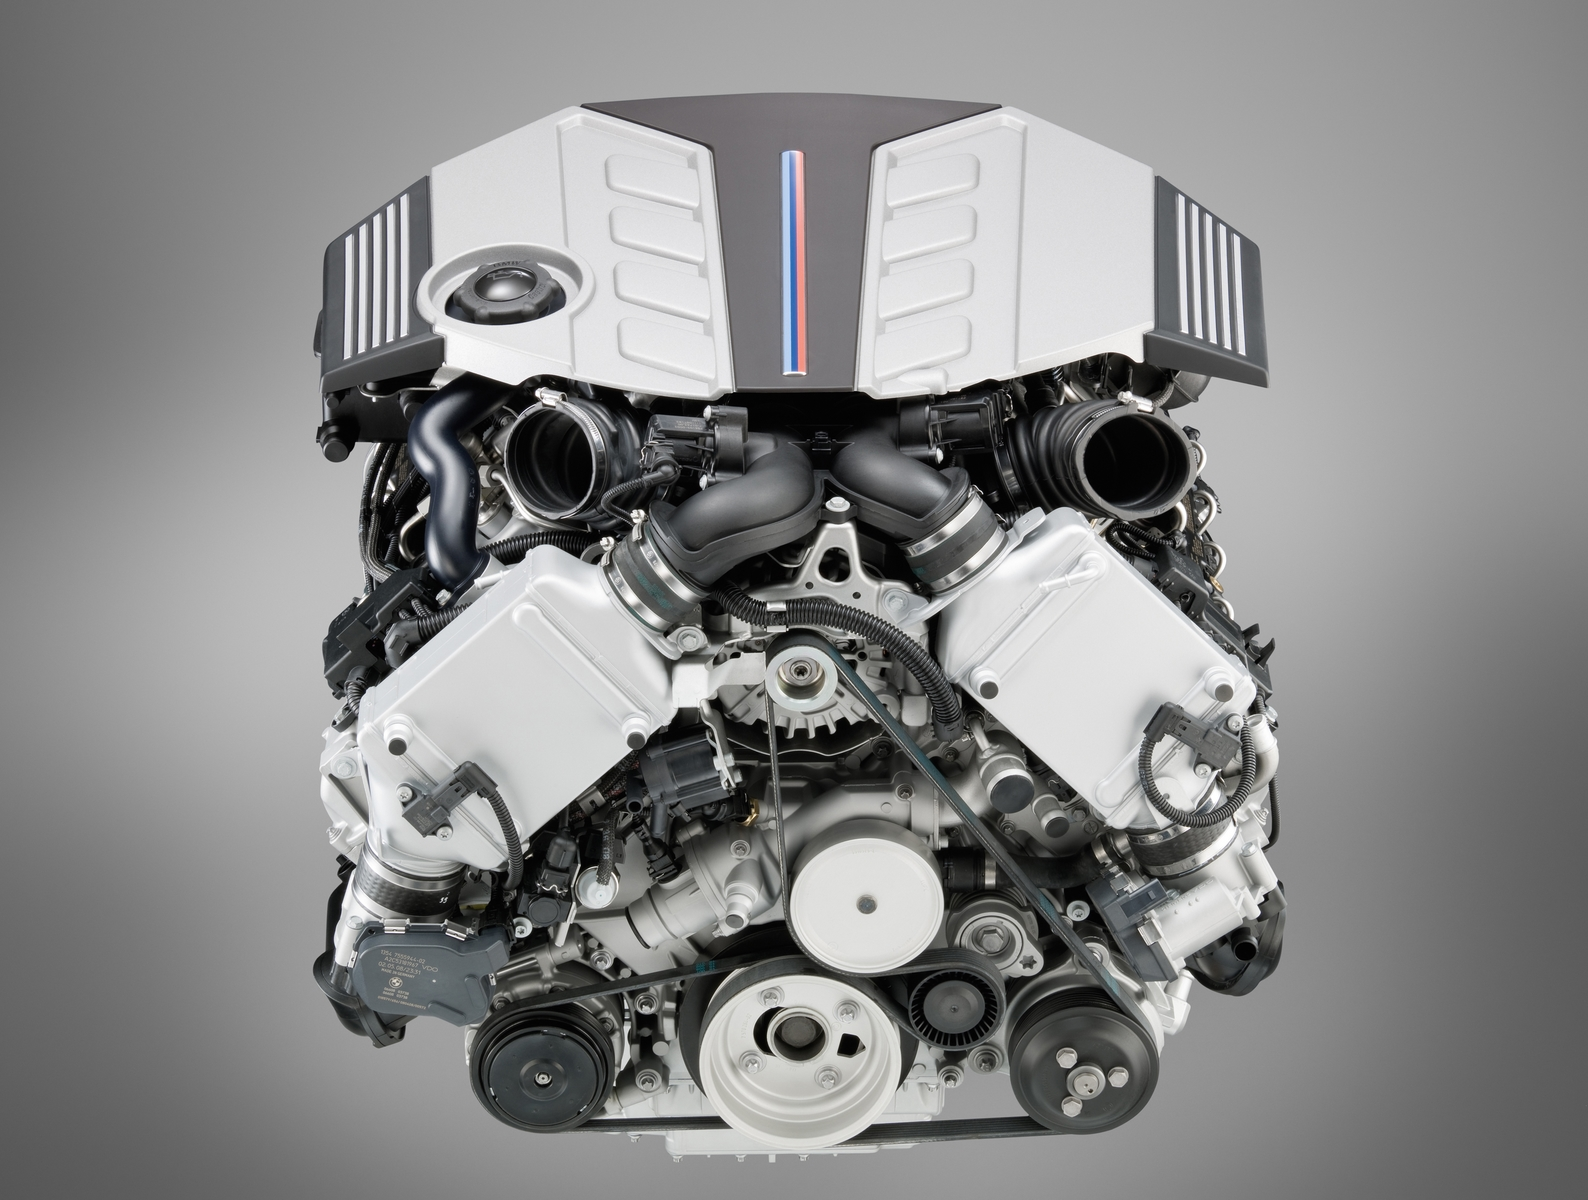 f10 m5 car blog  f10 m5 engine